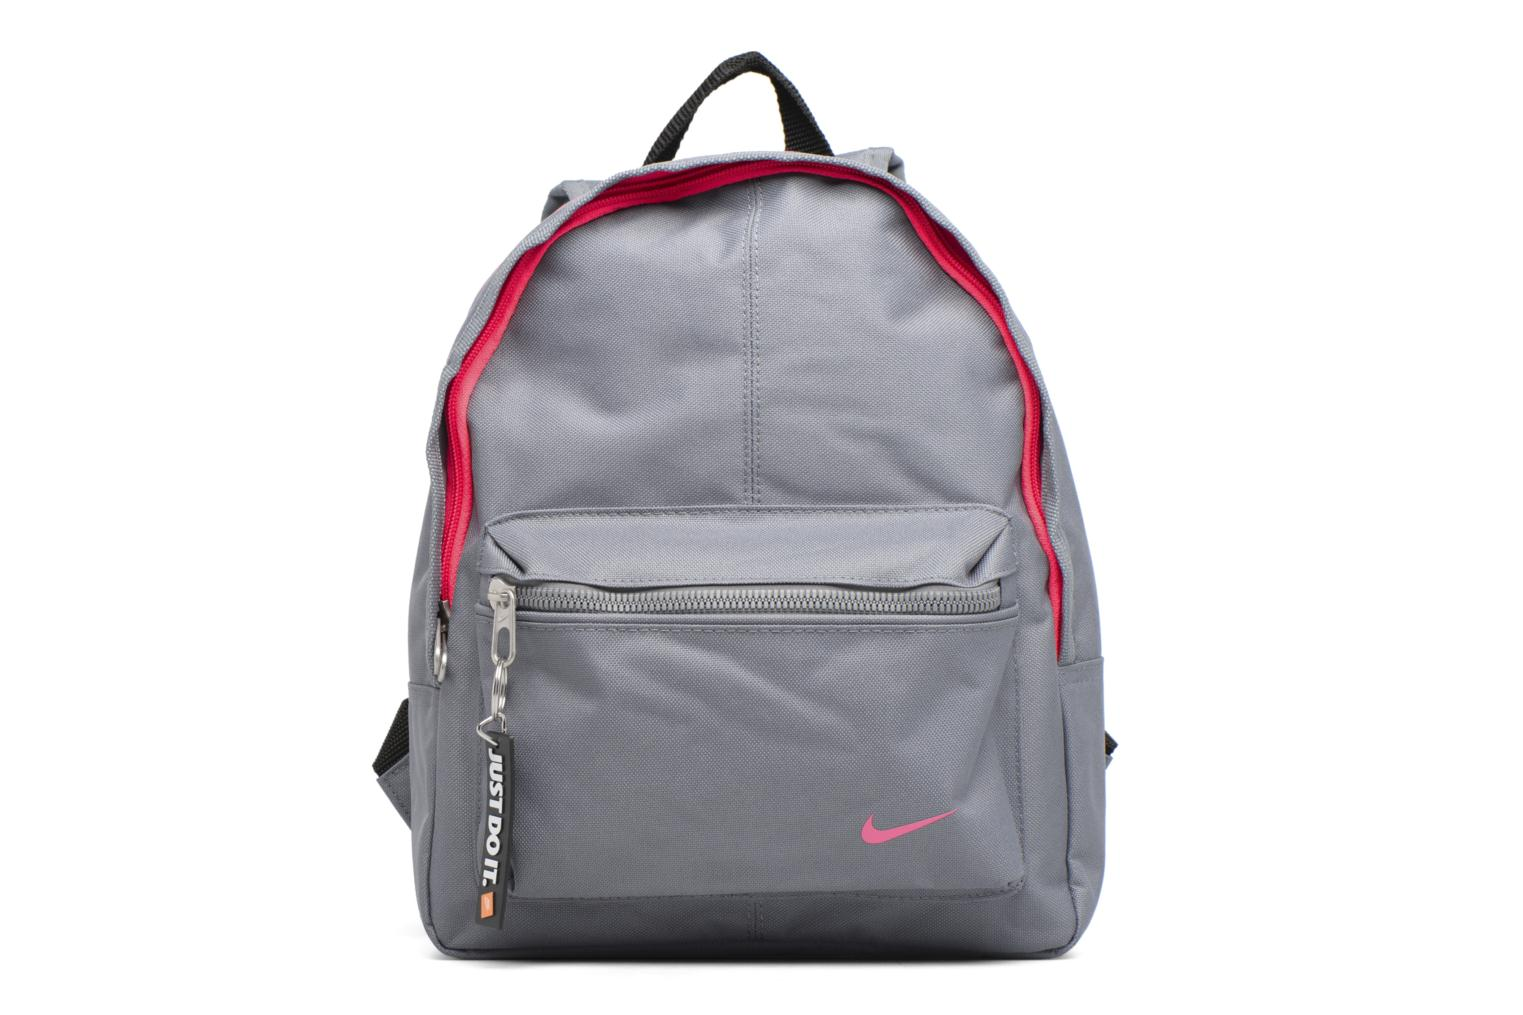 Kids' Nike Classic Backpack Cool grey/black/racer pink